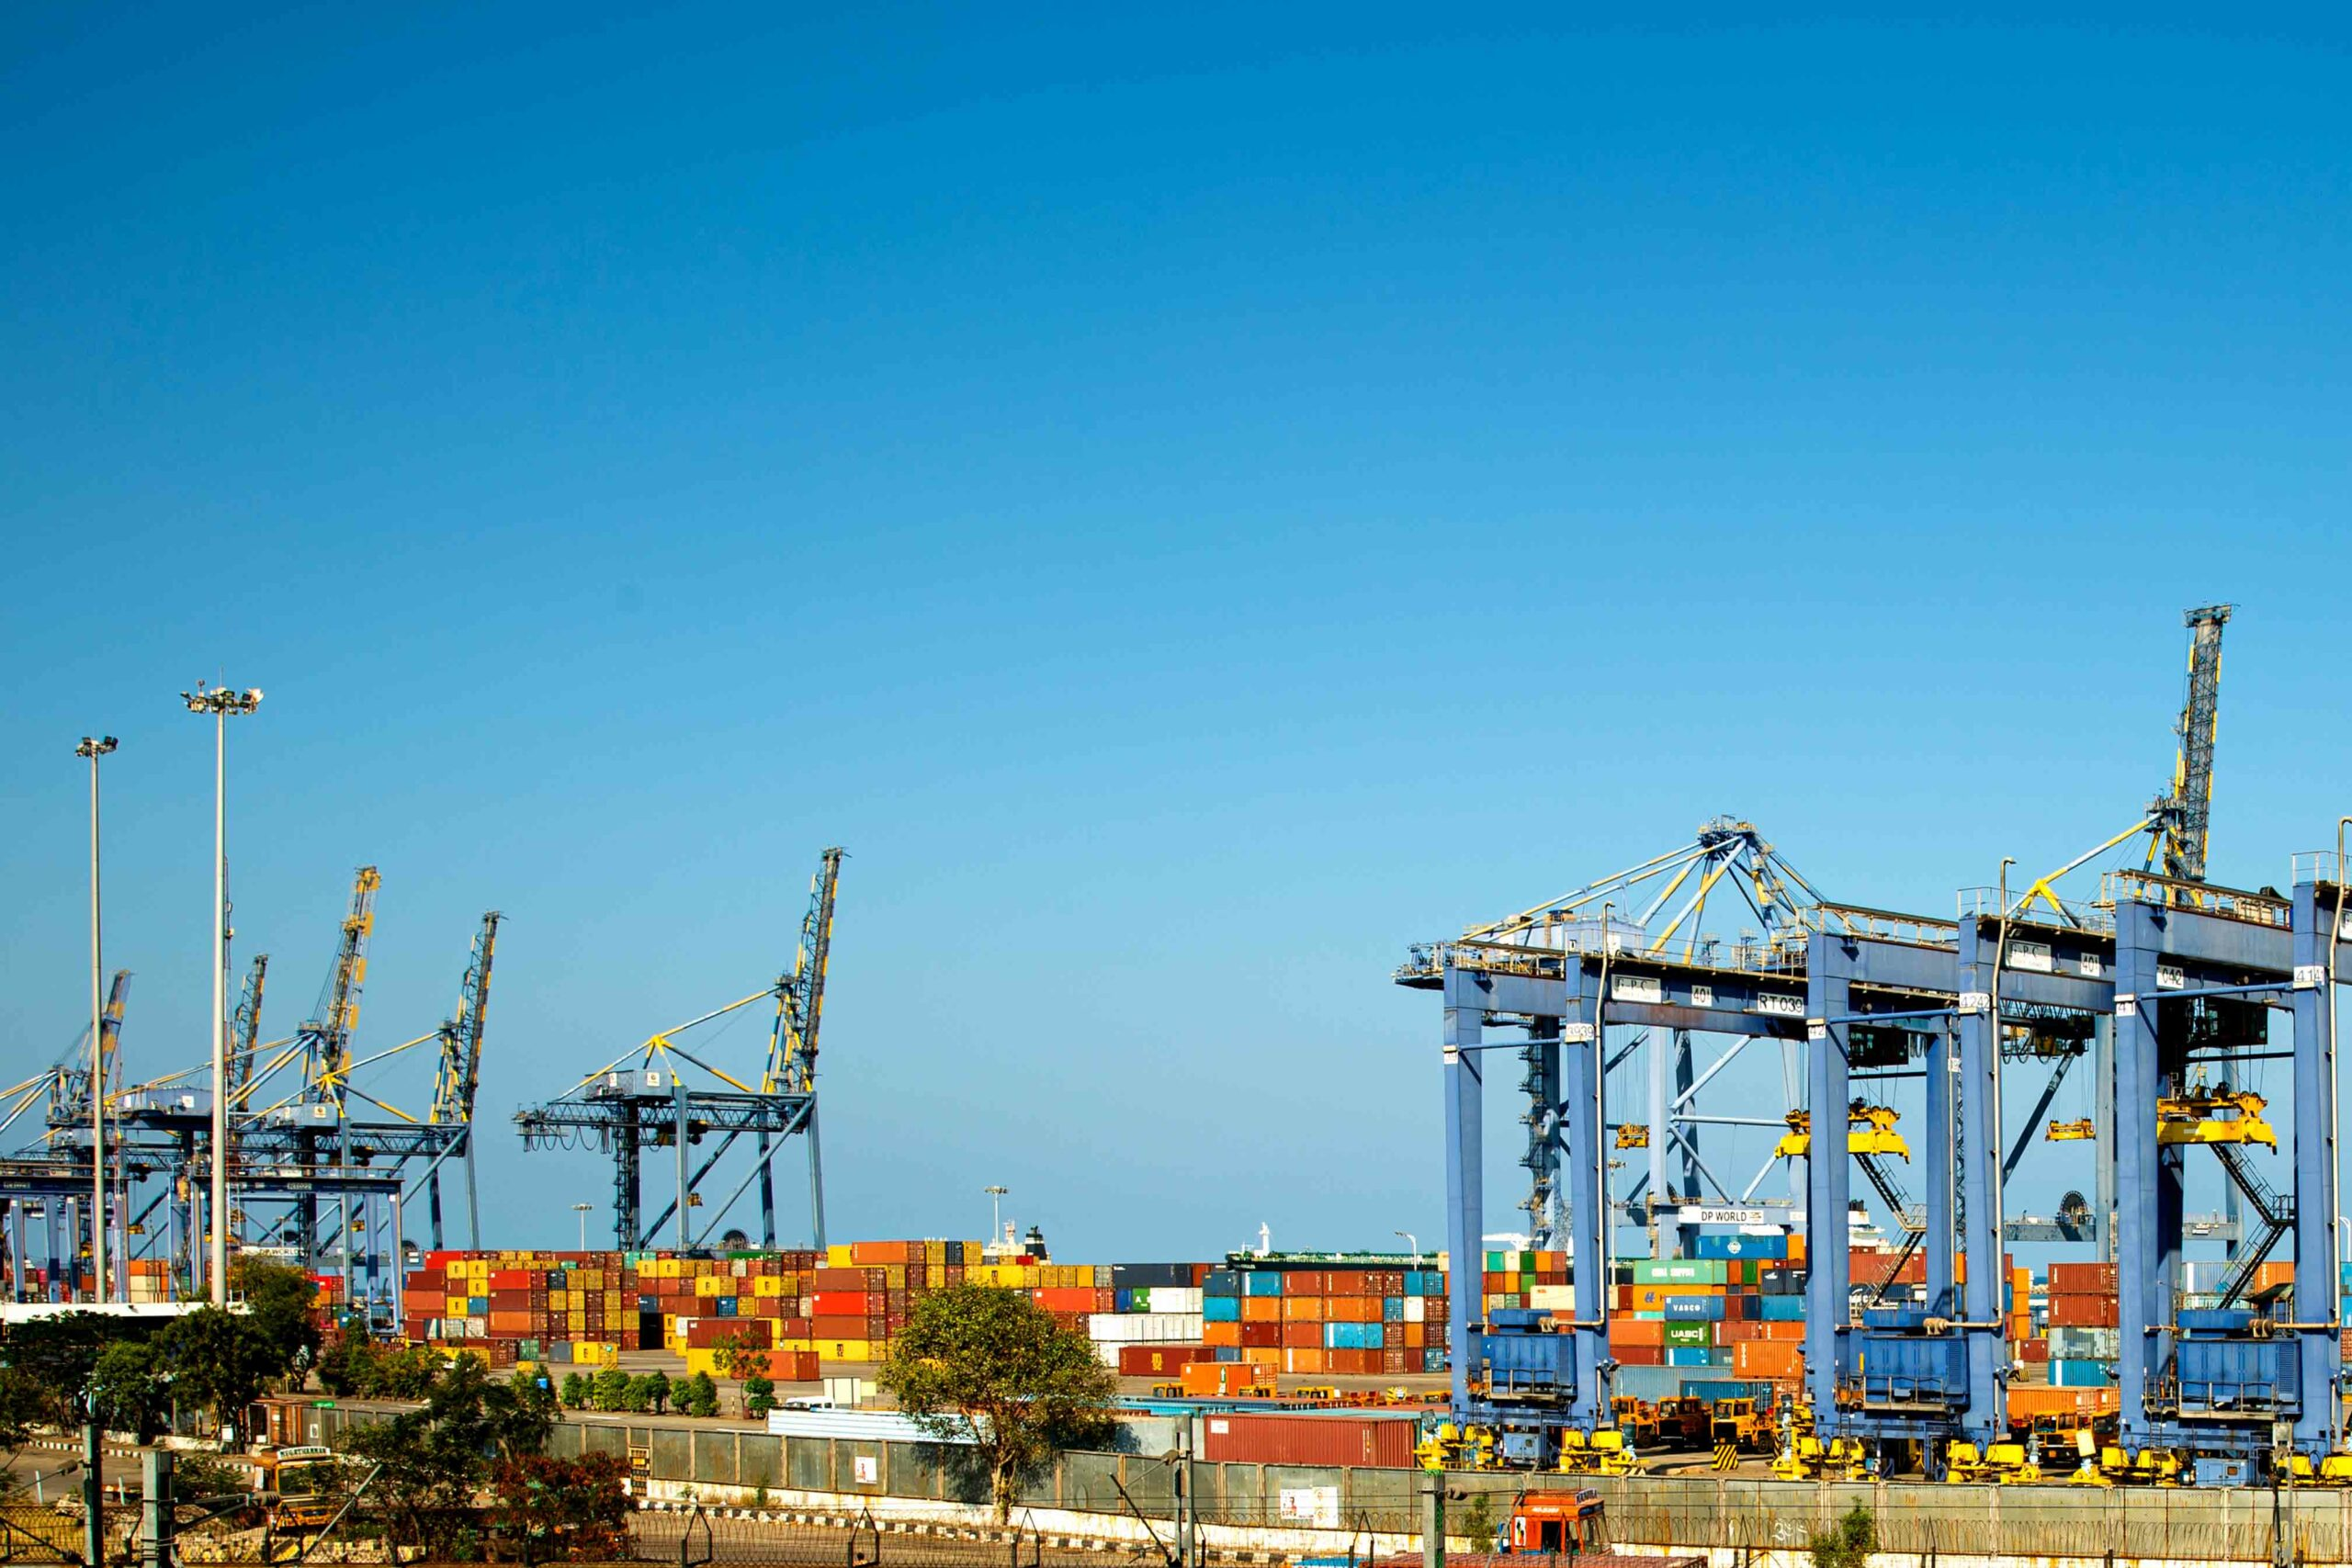 Chennai outranks other ports as most expensive Indian port for containers with $2,220 per 20 ft Apollo